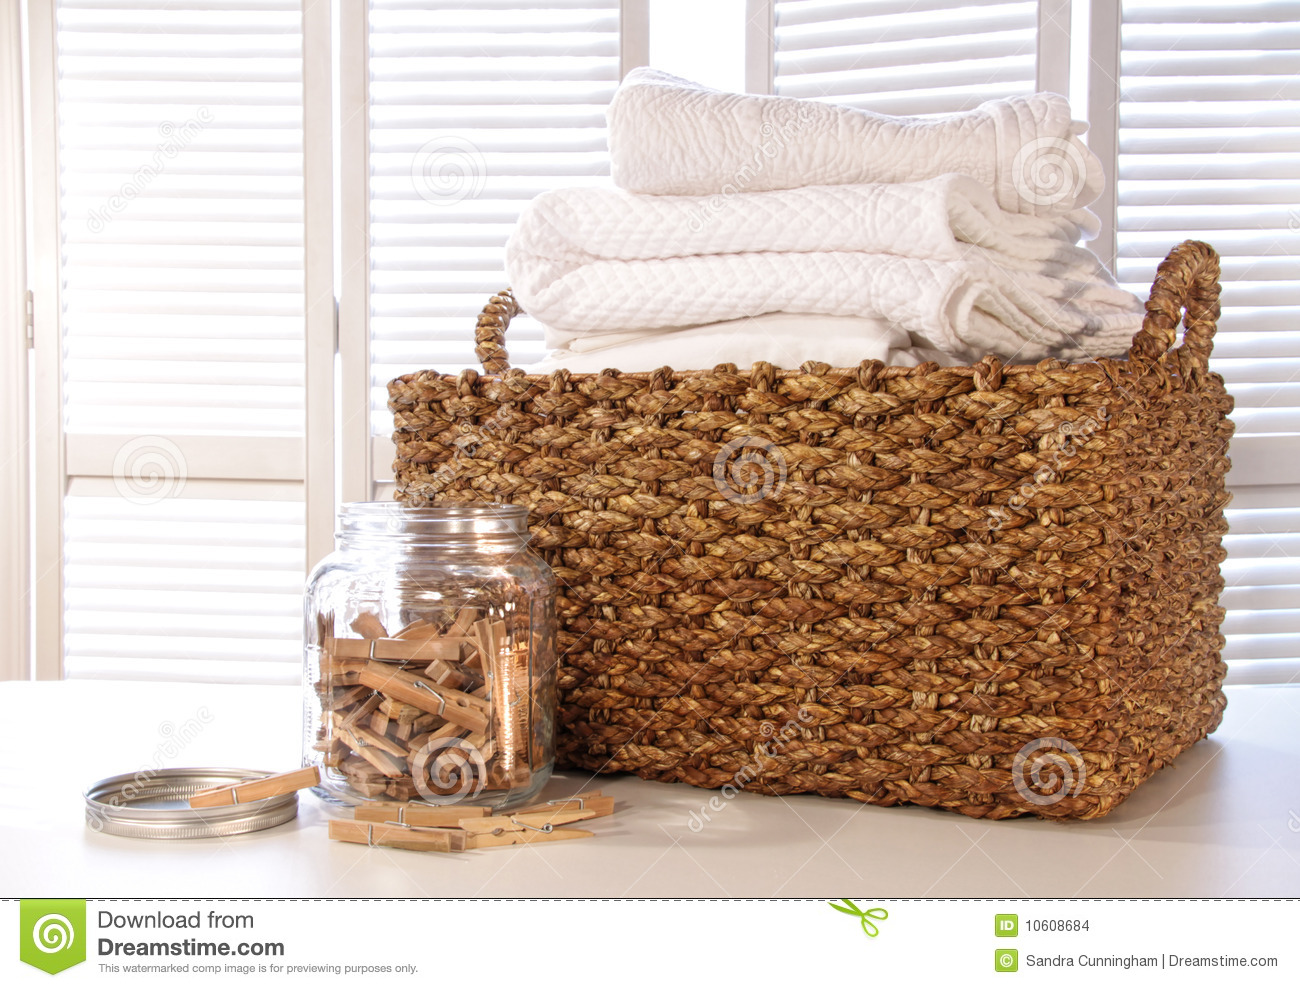 Laundry Basket With Linens On Table With Clothespins In Jar